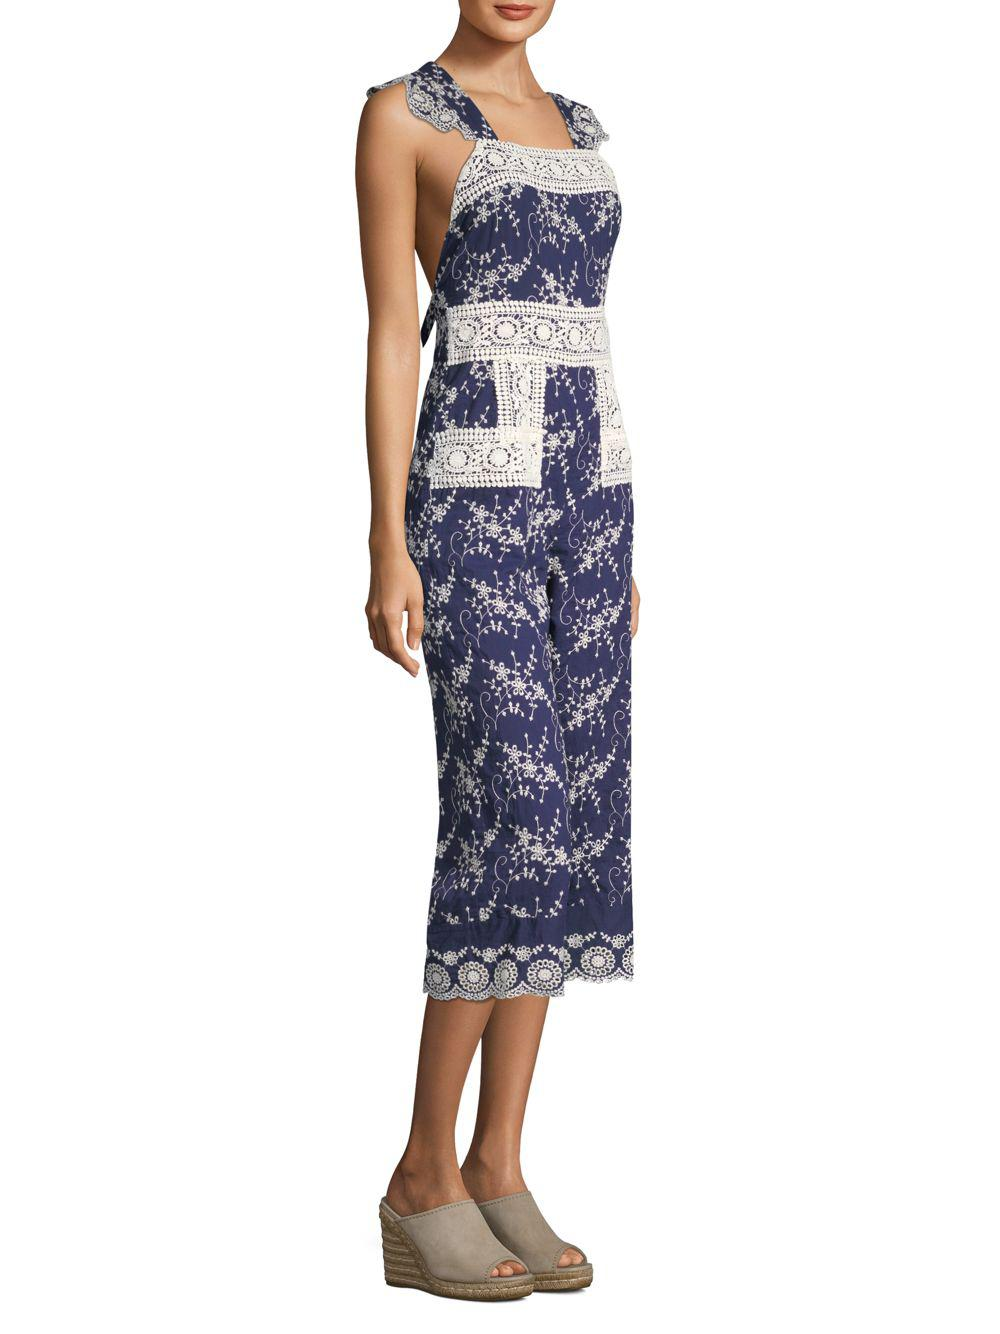 428541d6c52 Nightcap Olive Lace Apron Jumpsuit in Blue - Save 15.26717557251908 ...